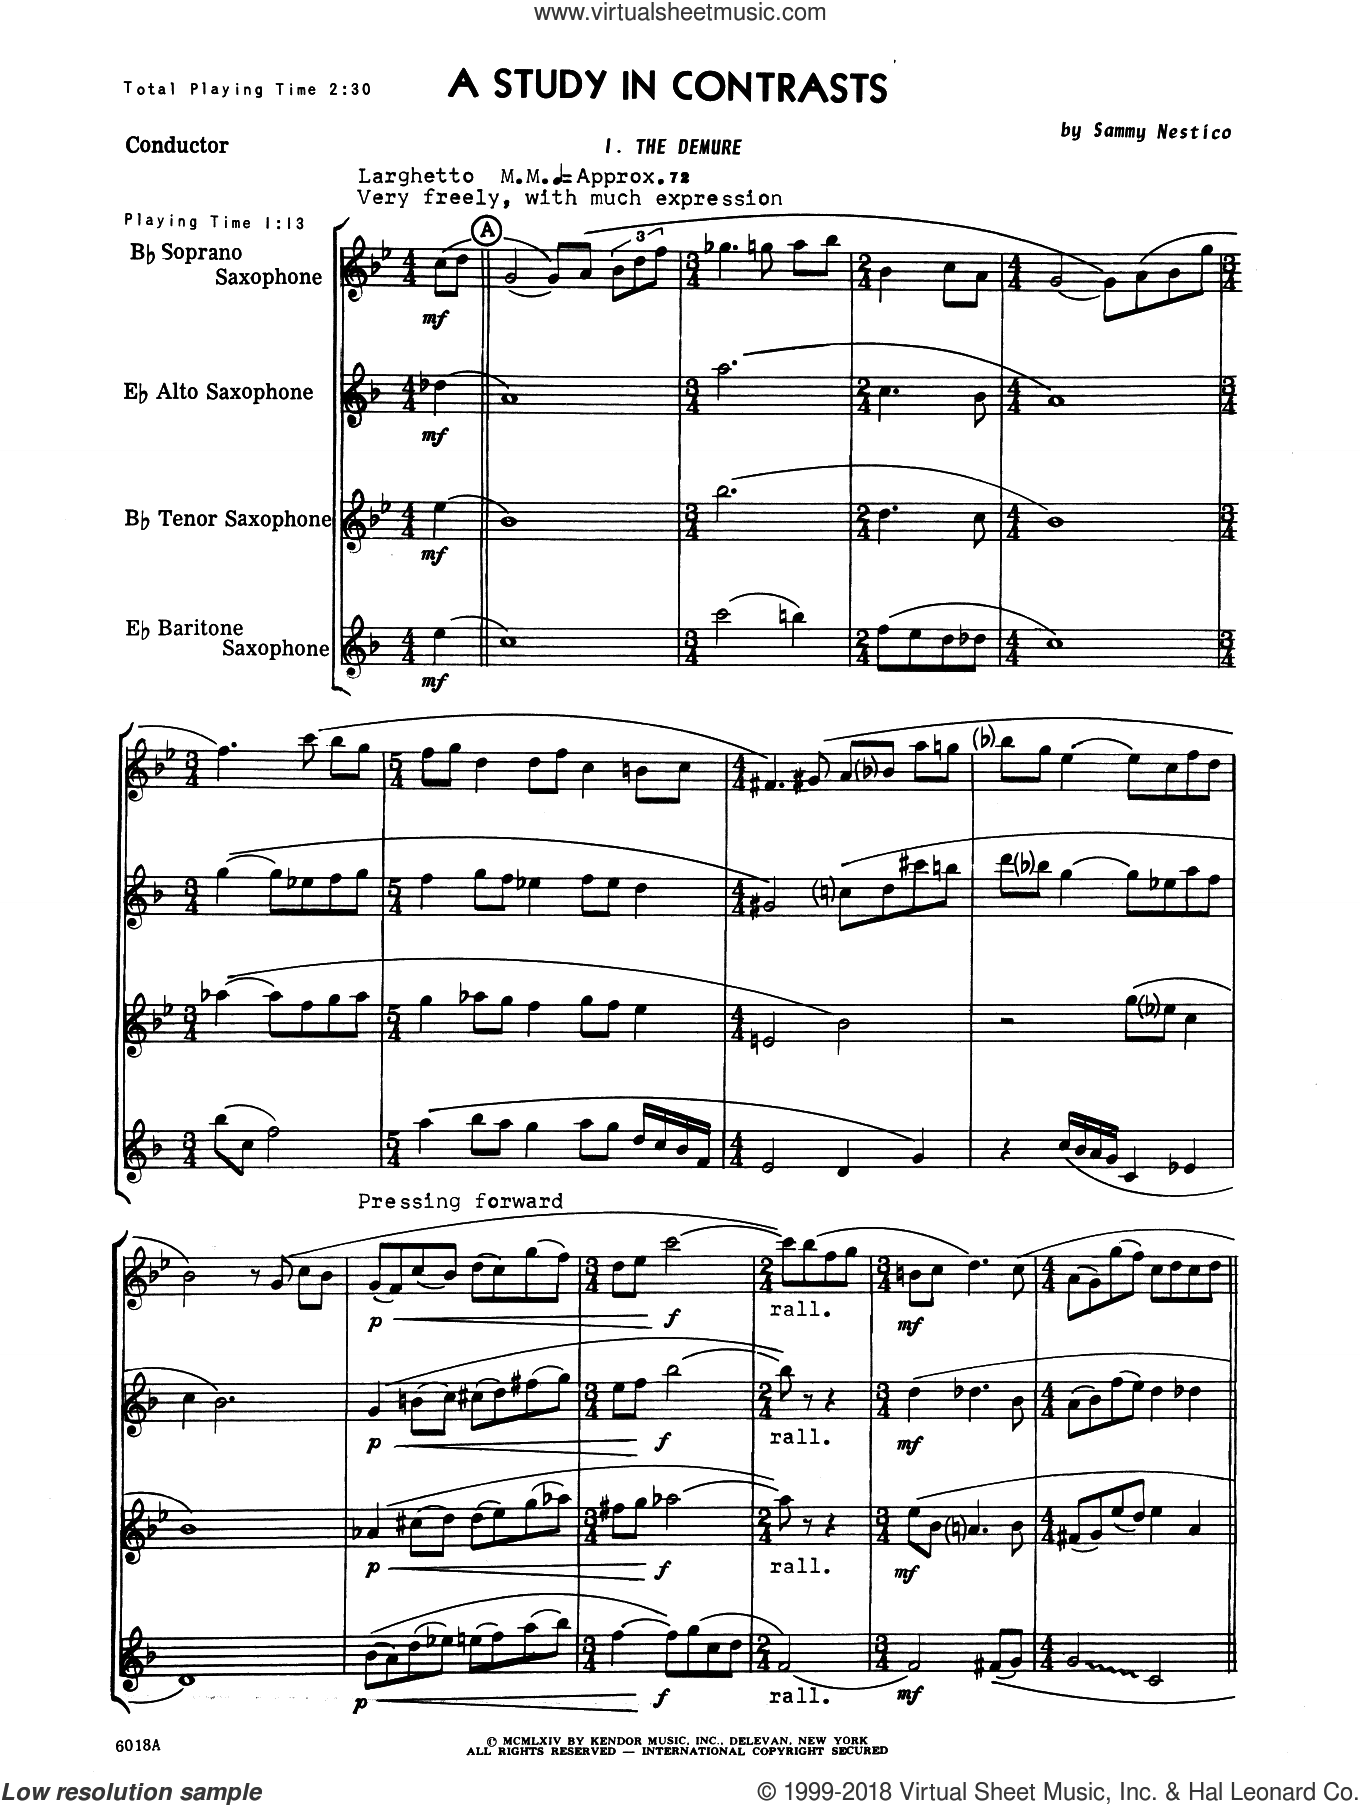 A Study In Contrasts (COMPLETE) sheet music for saxophone quartet by Sammy Nestico, intermediate saxophone quartet. Score Image Preview.